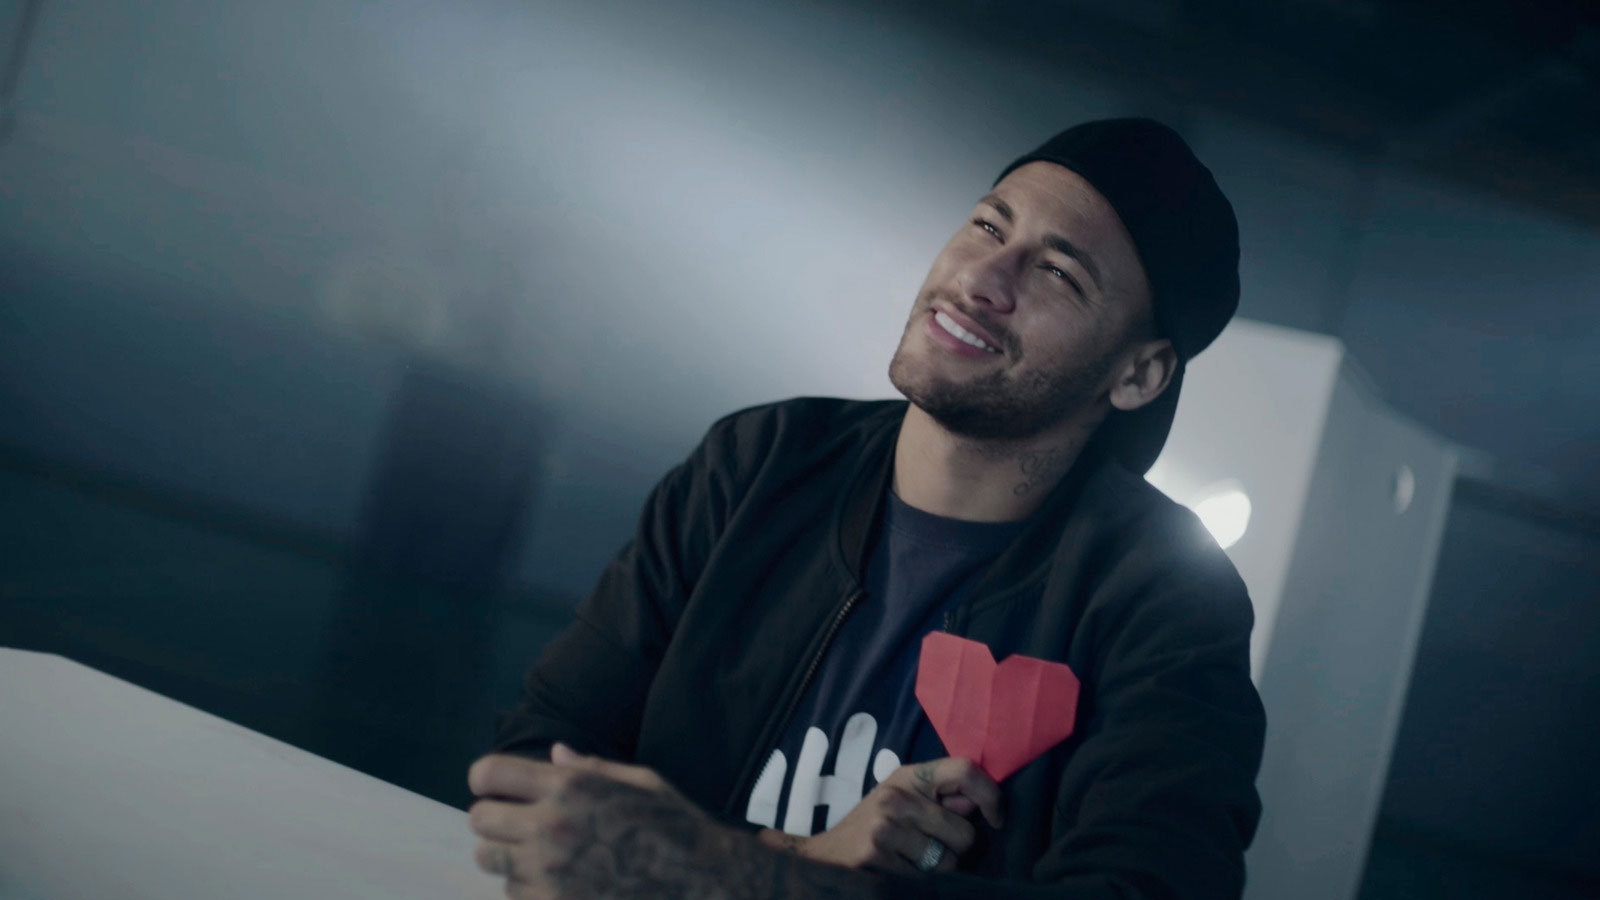 Neymar-Jr -HI's-global-ambassador -with-an-origami-heart-on-his-chest during the filming of Teacher Kids